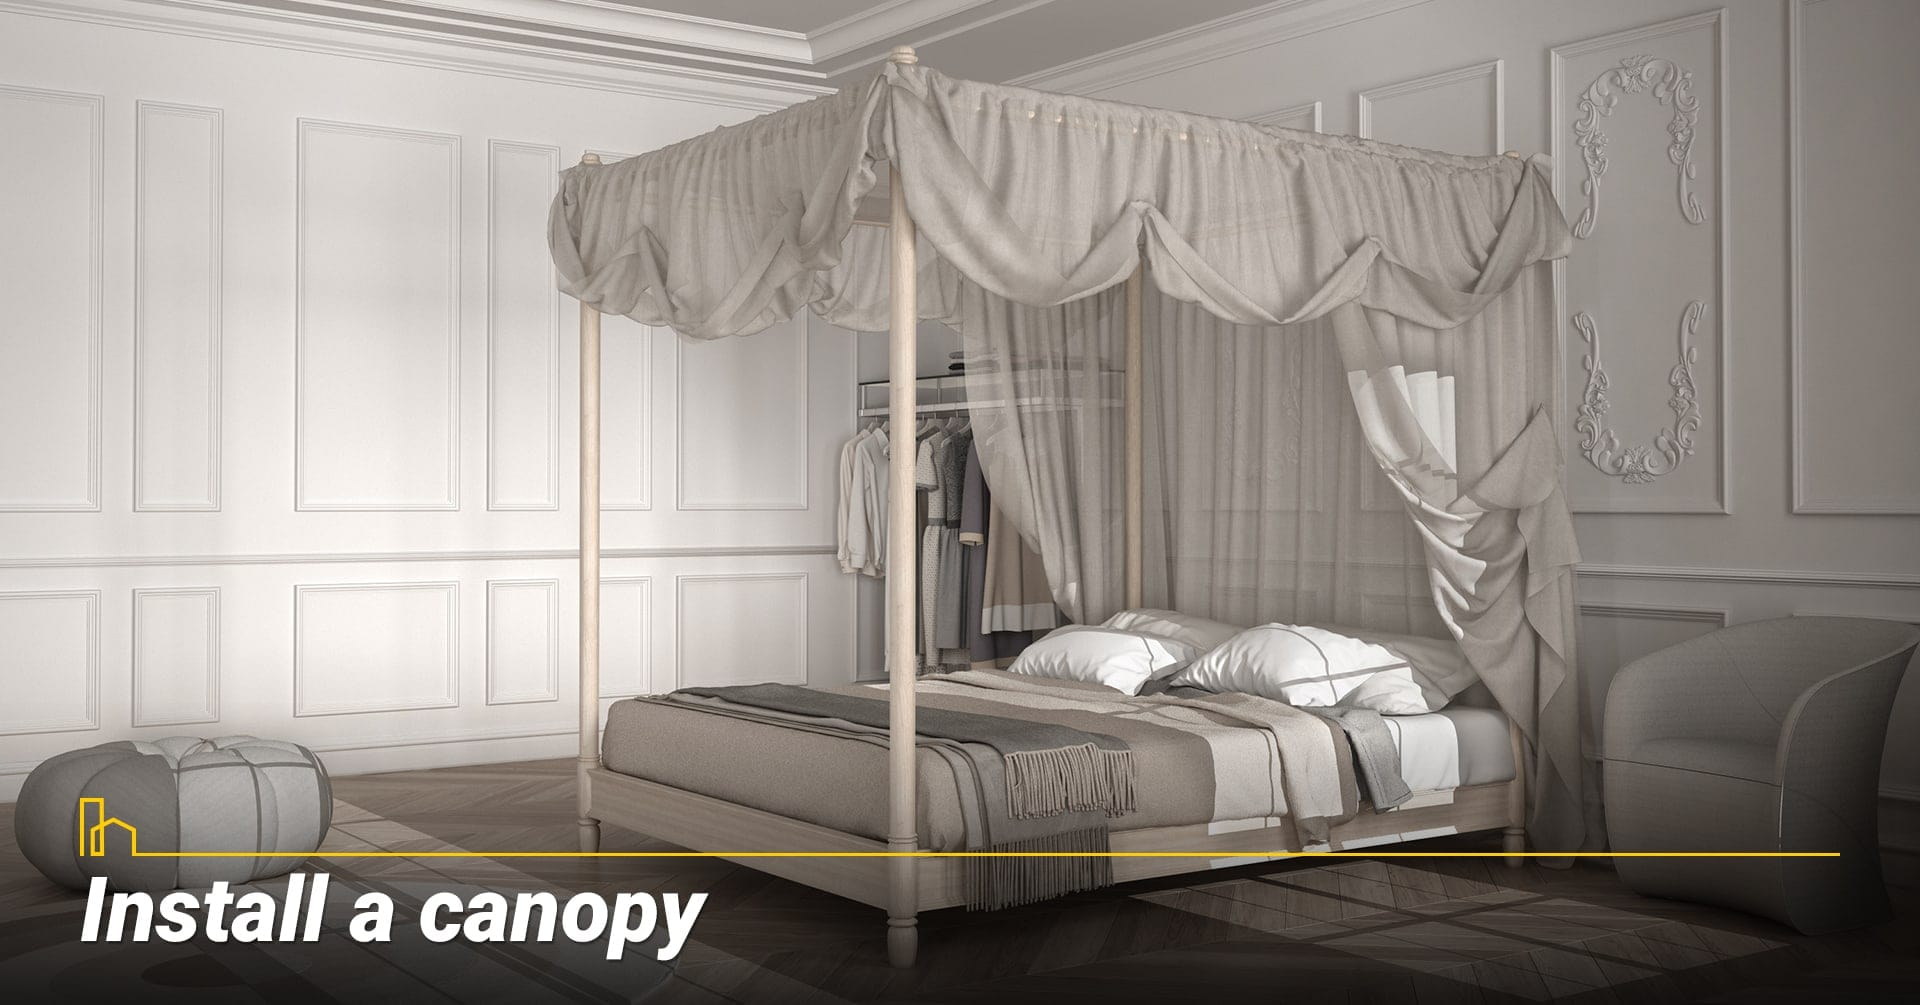 Install a canopy, make good use of canopy